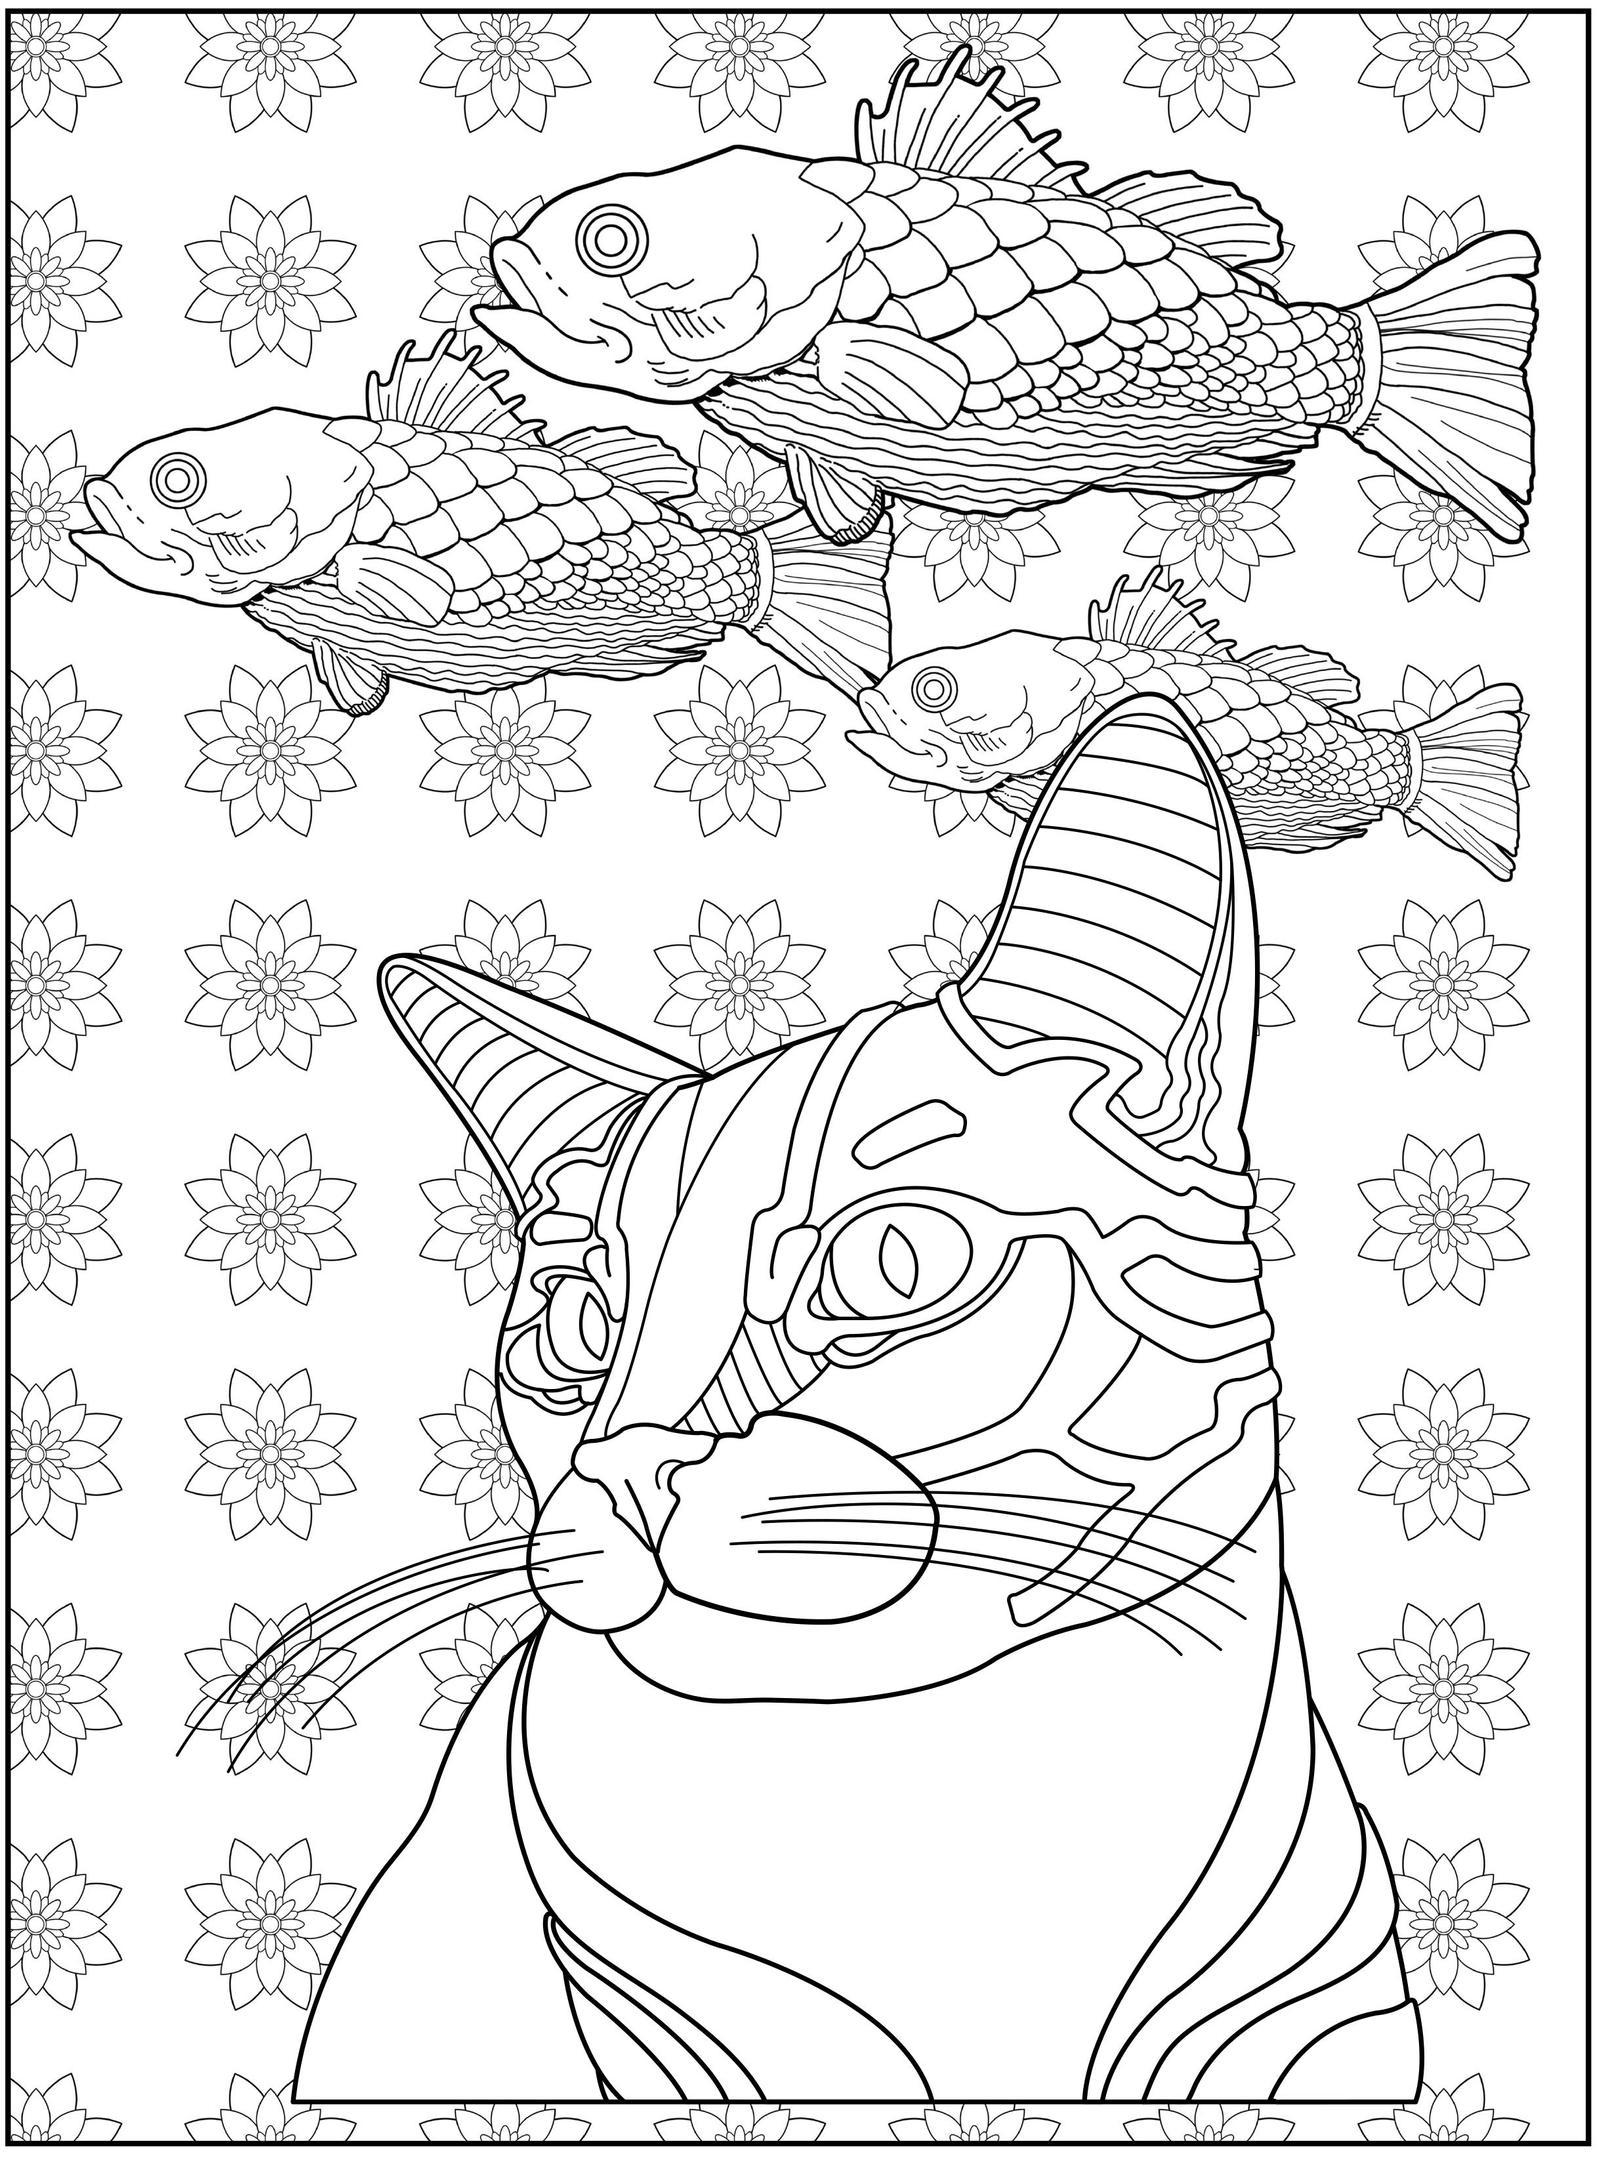 Dreaming Of Fish Coloring Page FELINE FANTASIA By BertramBelrose